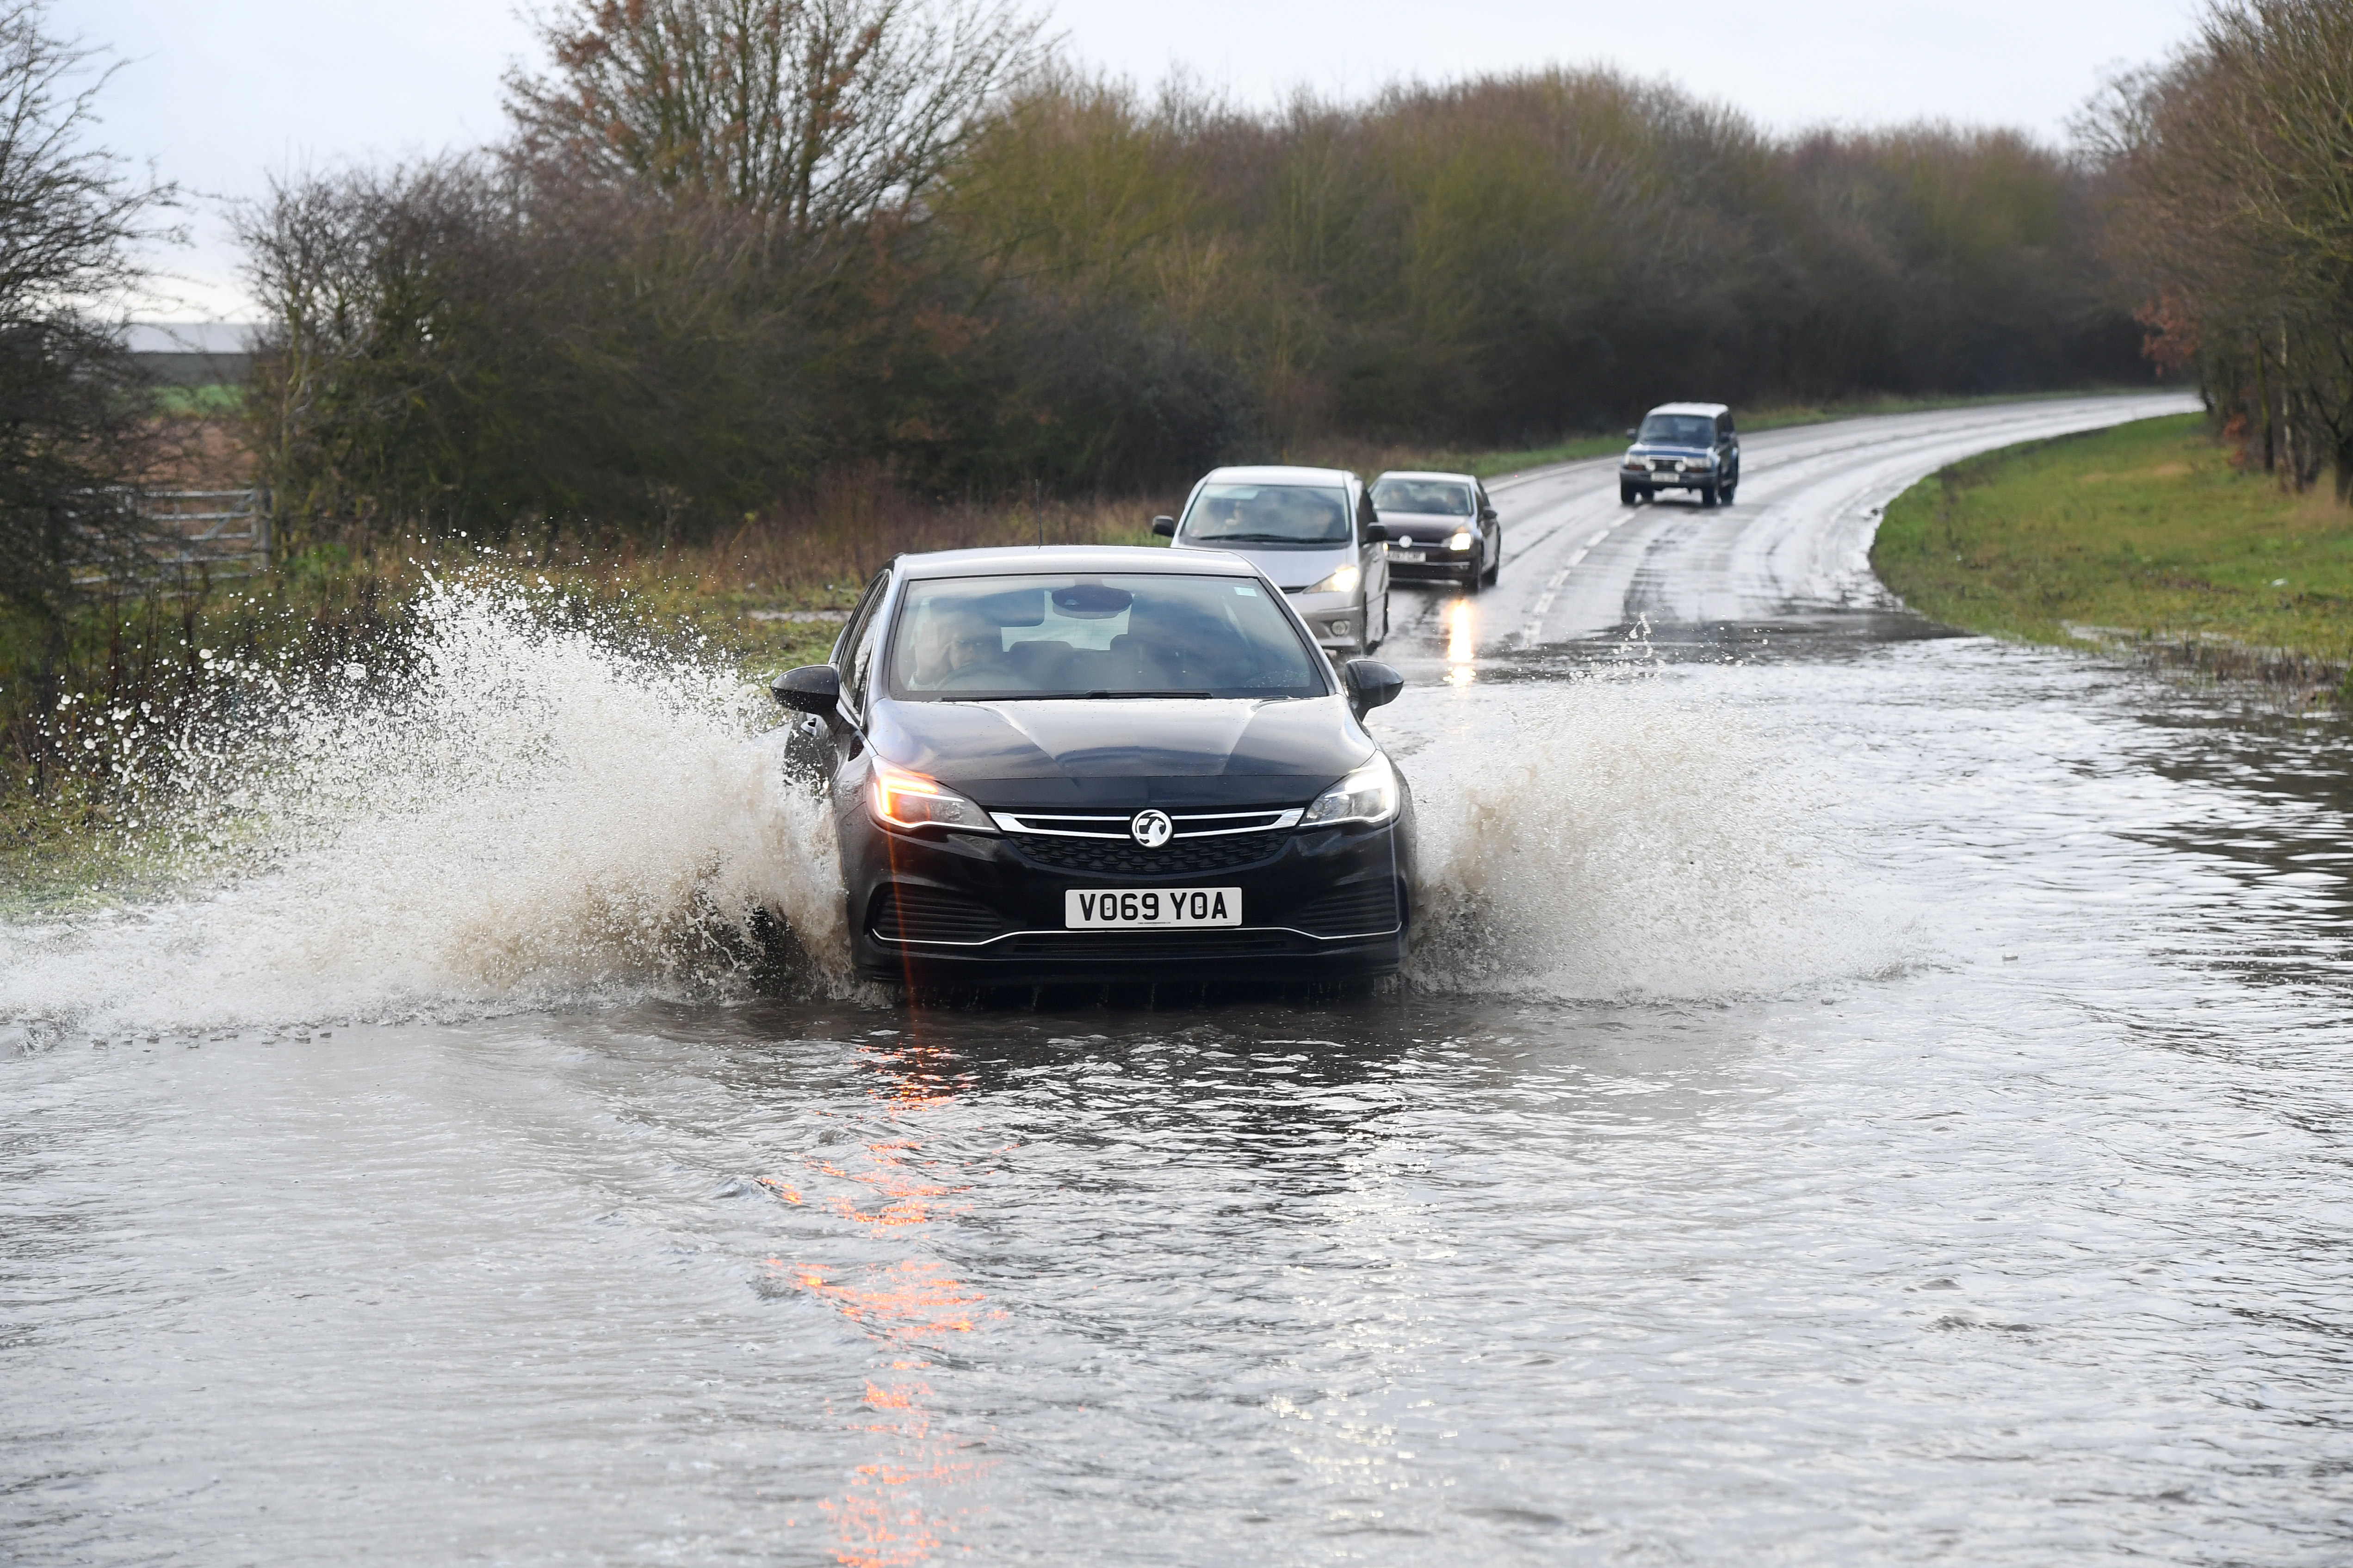 SUFFOLK, ENGLAND - DECEMBER 24: People drive through a flooded road following heavy rainfall on December 24, 2020 in Suffolk, United Kingdom . (Photo by Dave J Hogan/Getty Images)